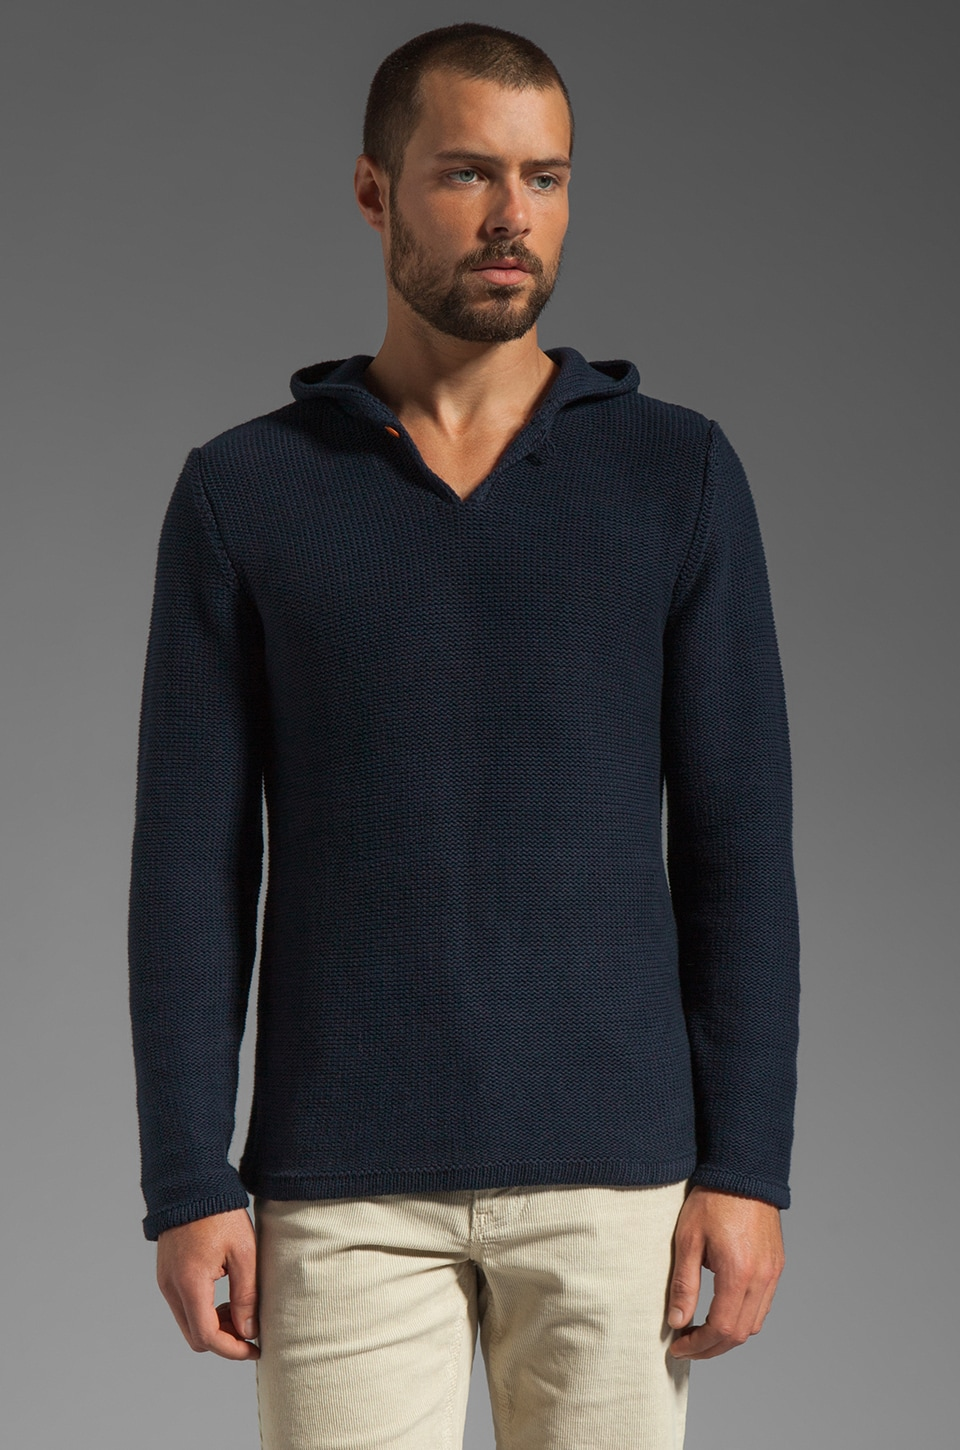 WRK Montauk Hoody in Navy